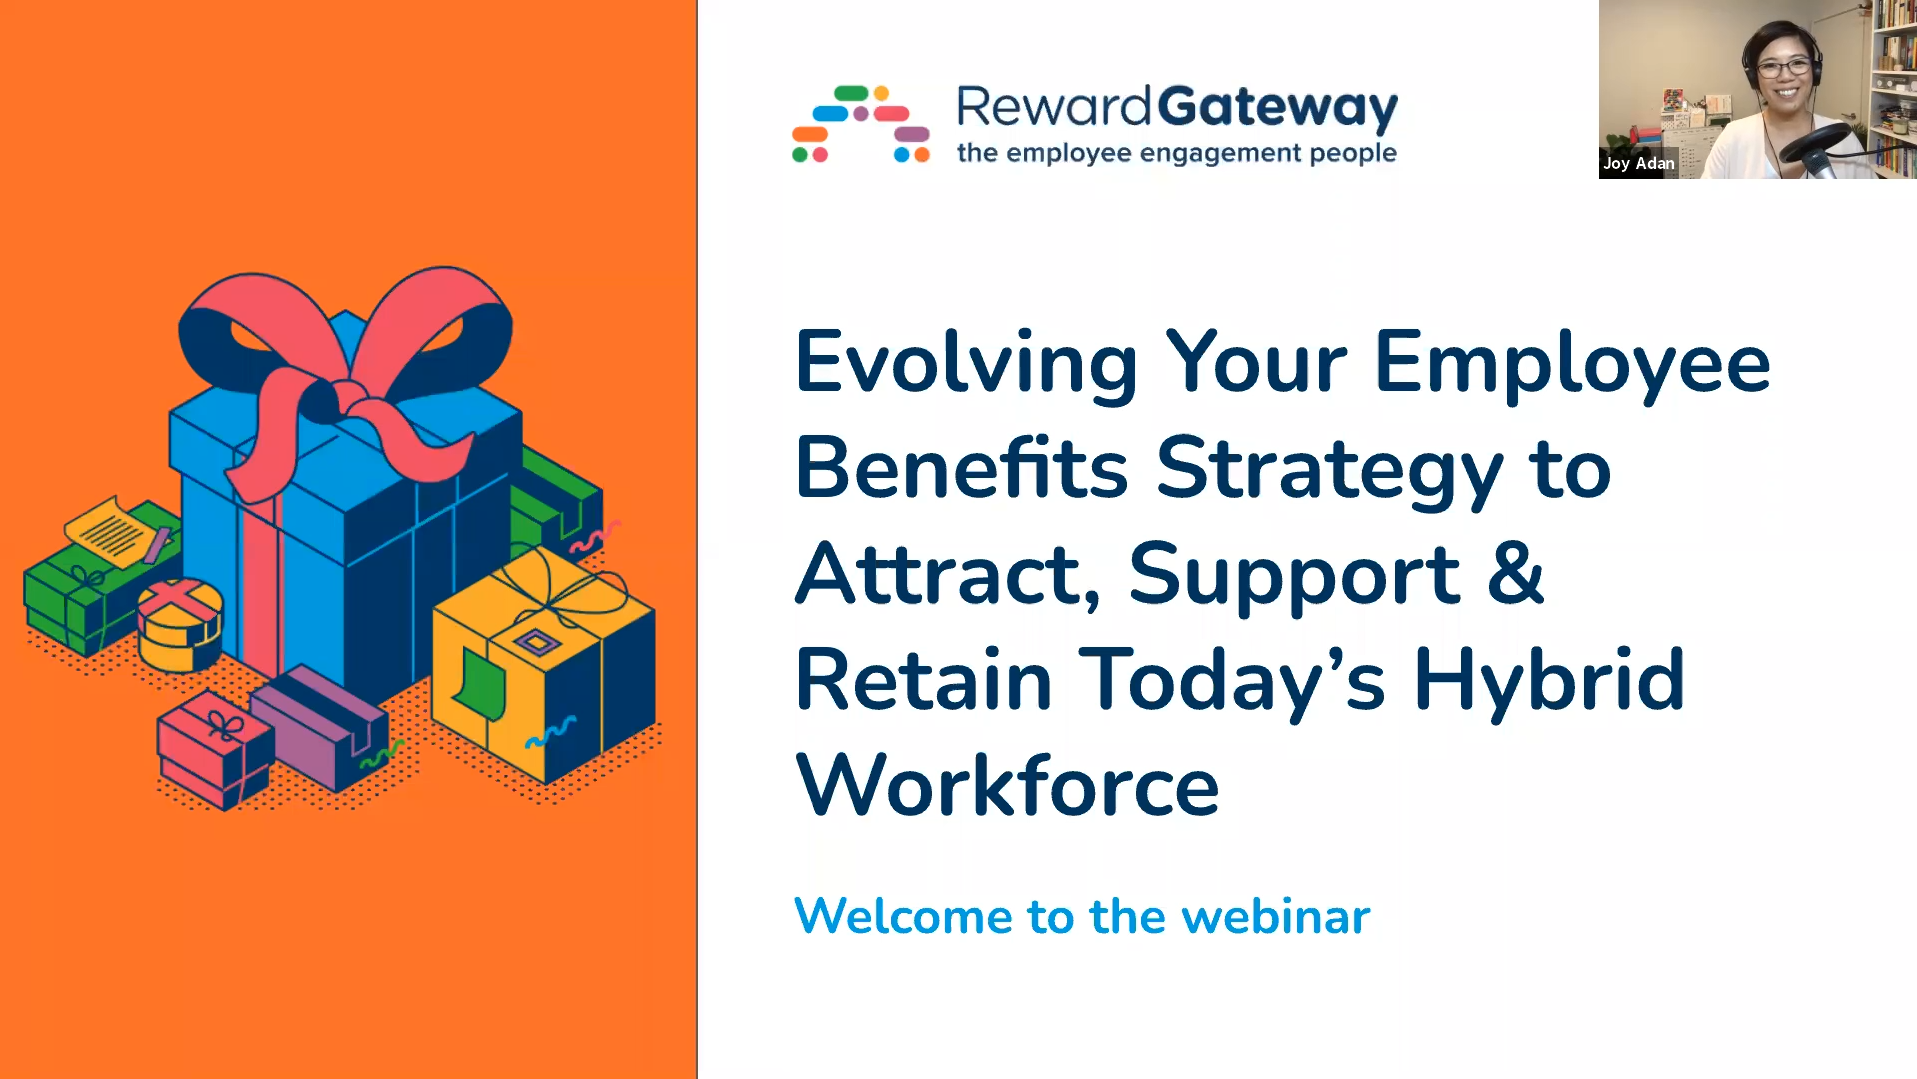 Evolving your employee benefits strategy to attract, support & retain today's hybrid workforce